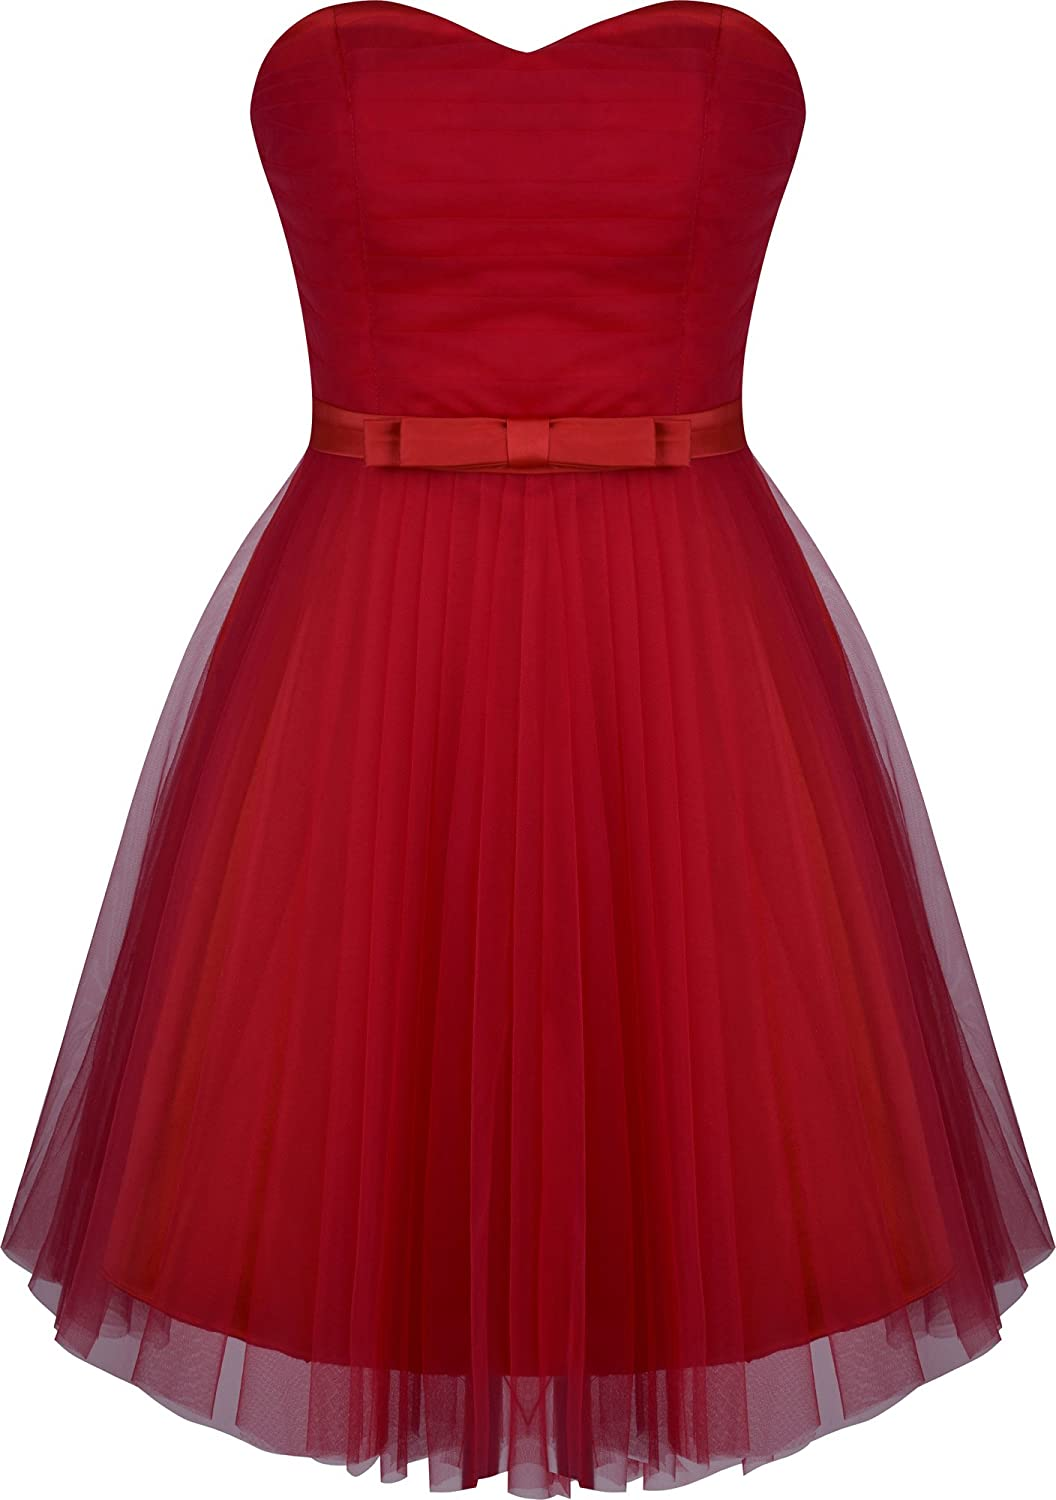 Angel-fashions Women's Sweetheart Pleated Tulle Prom A-line Cocktail Dress Red) A-278RD-L